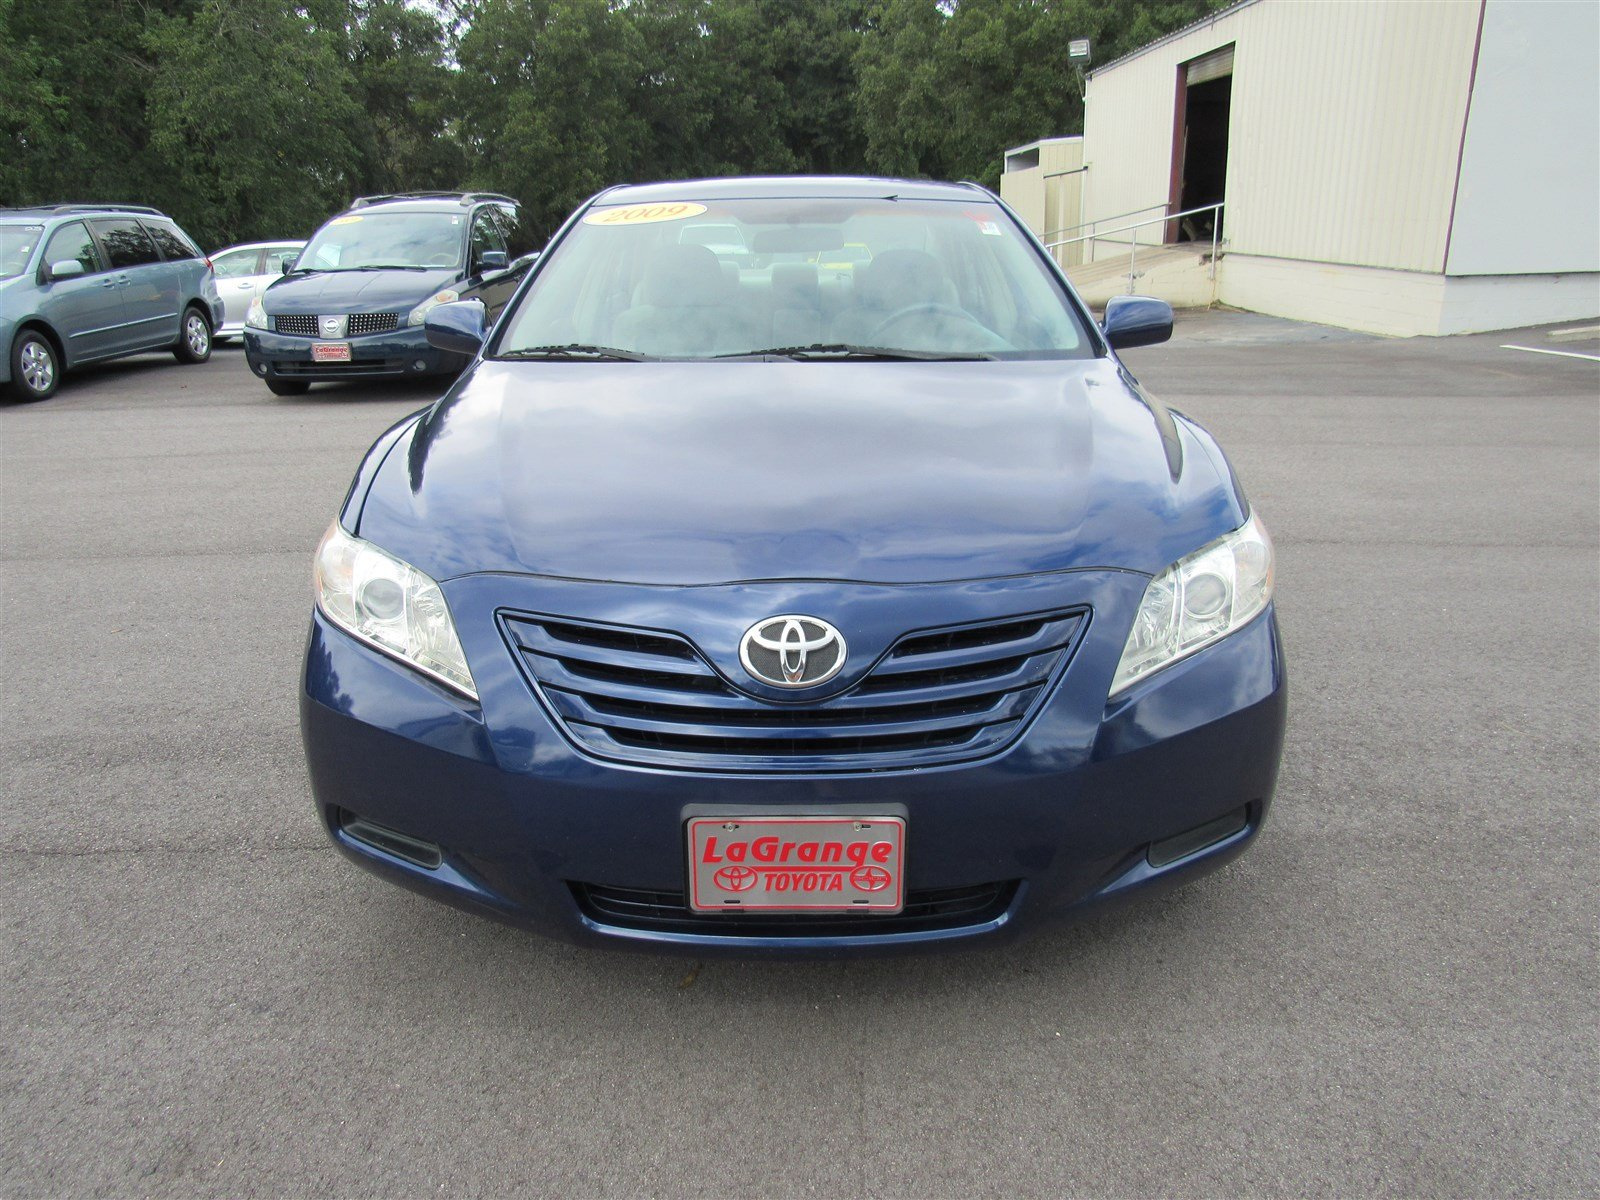 Pre Owned 2009 Toyota Camry 4dr Sdn I4 Auto Le Sedan In Lagrange Fuel Filter Location On